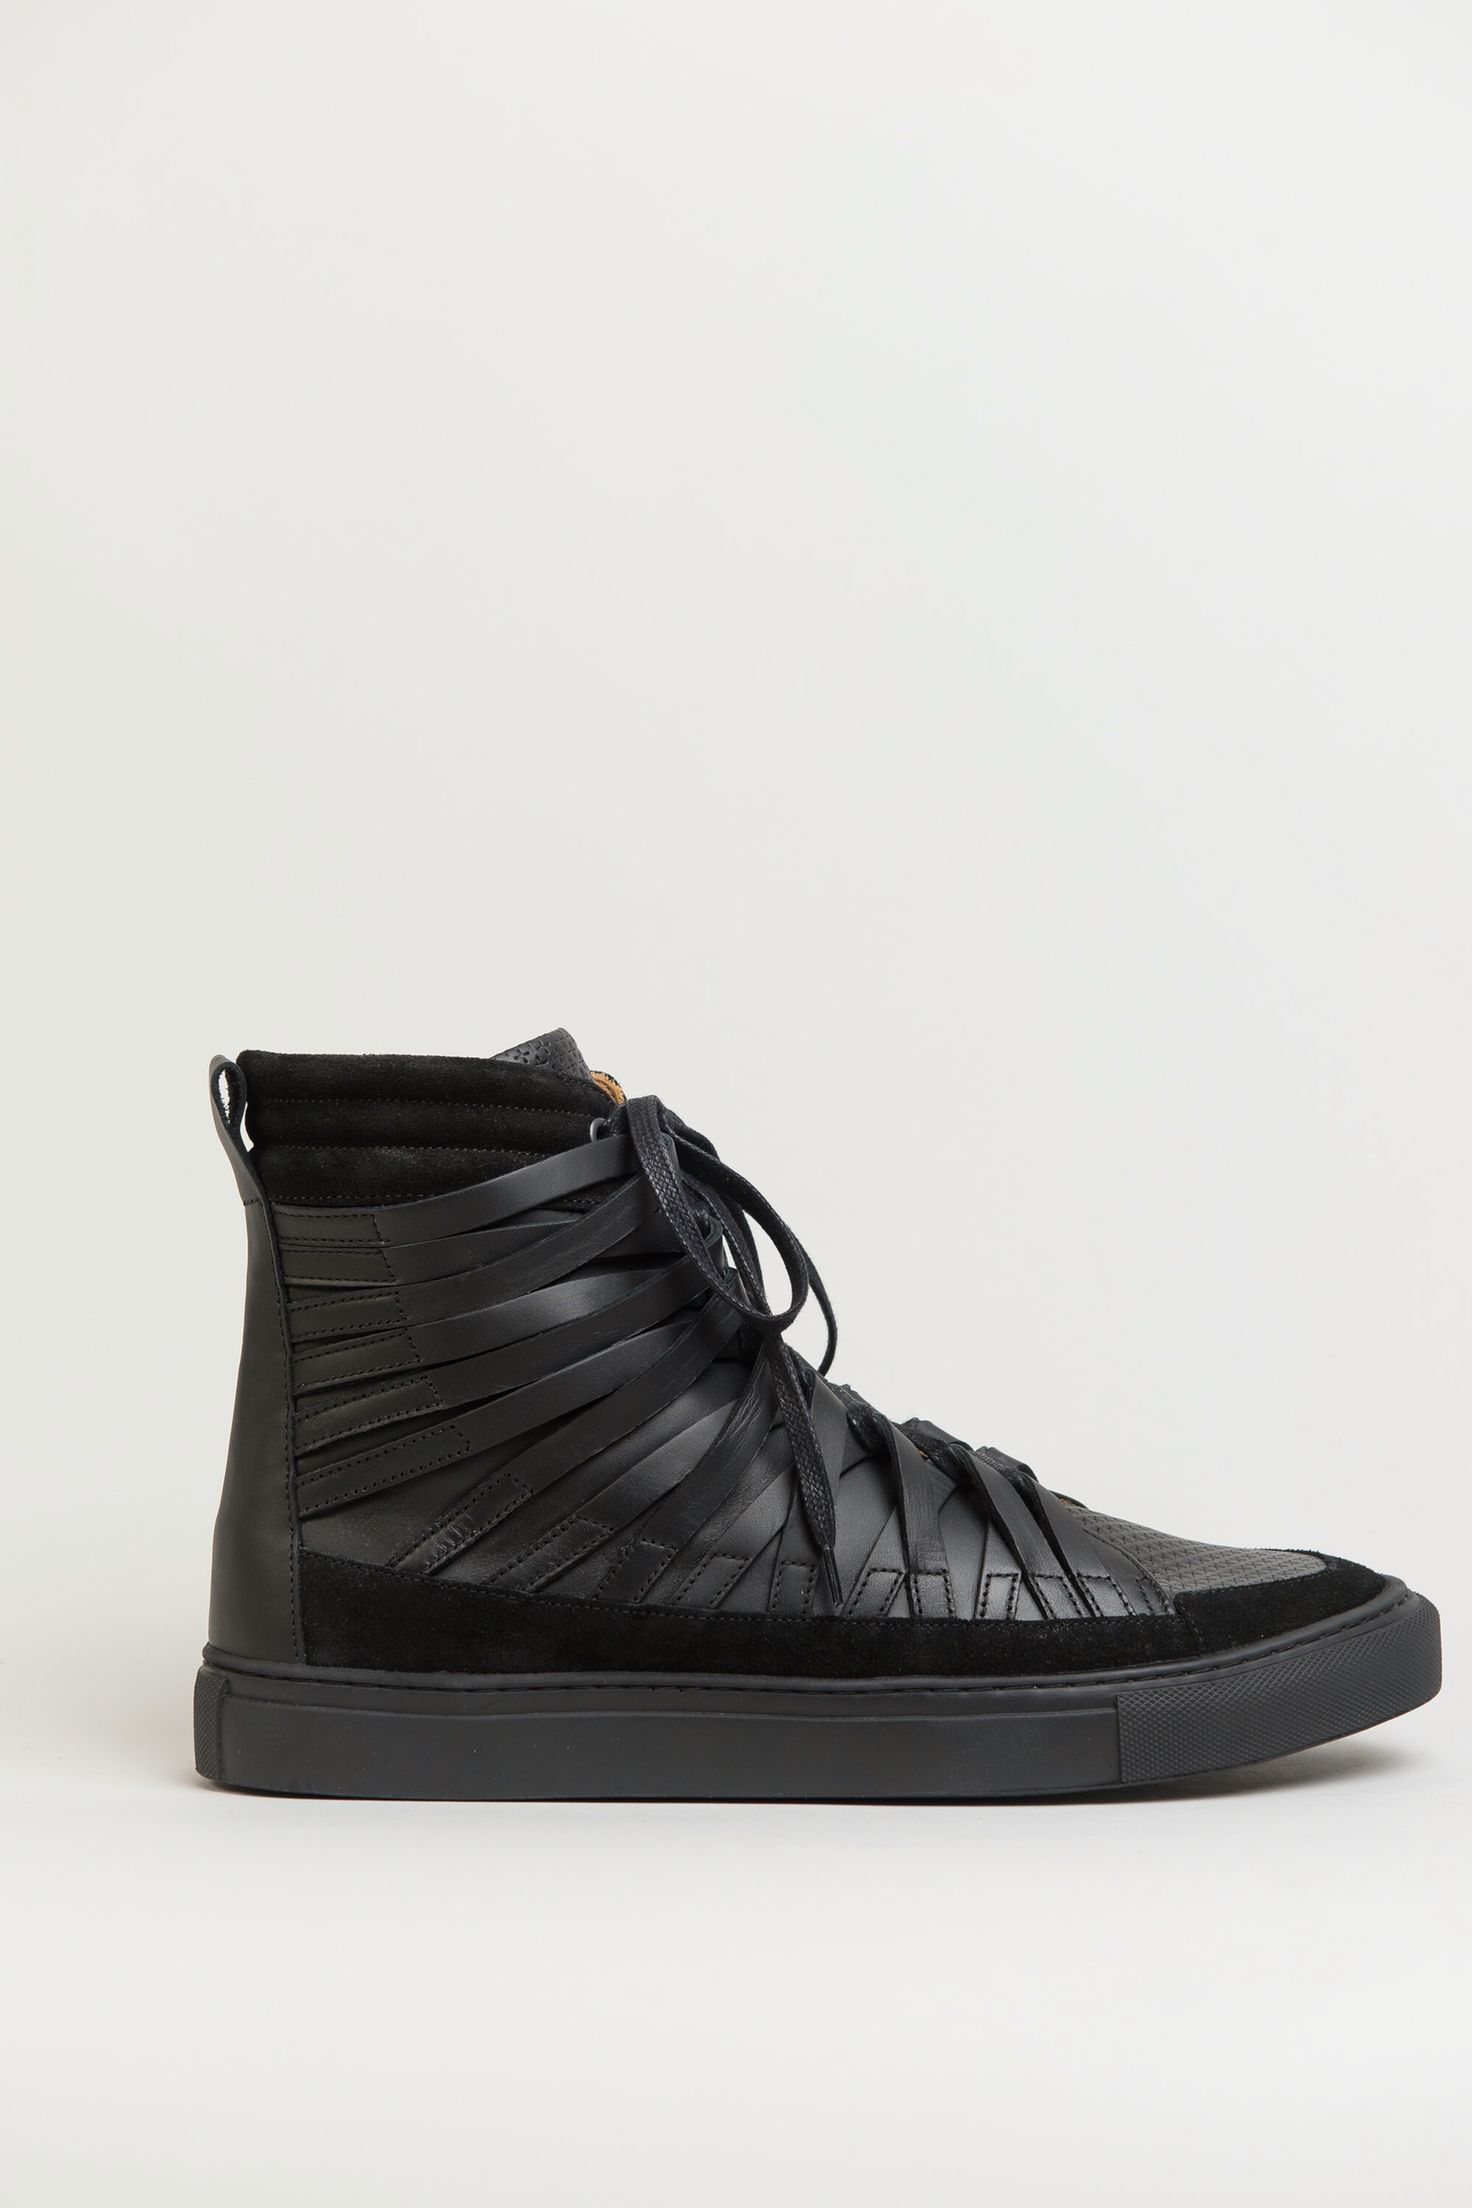 lace-up sneakers - Black Damir Doma y7iNMa3A